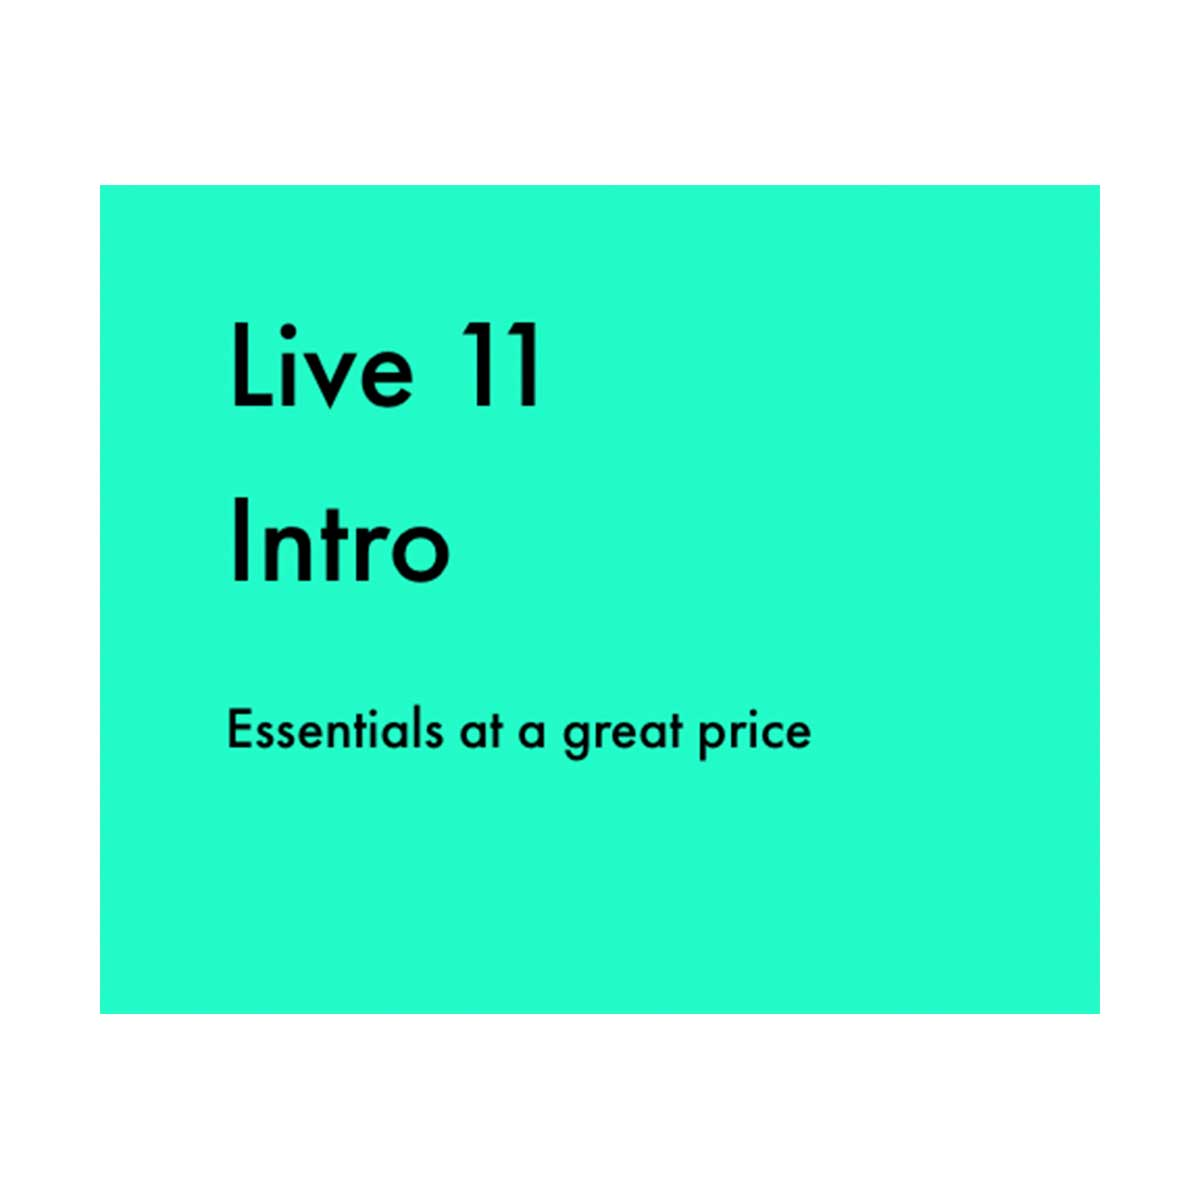 Ableton Live 11 Intro download only code